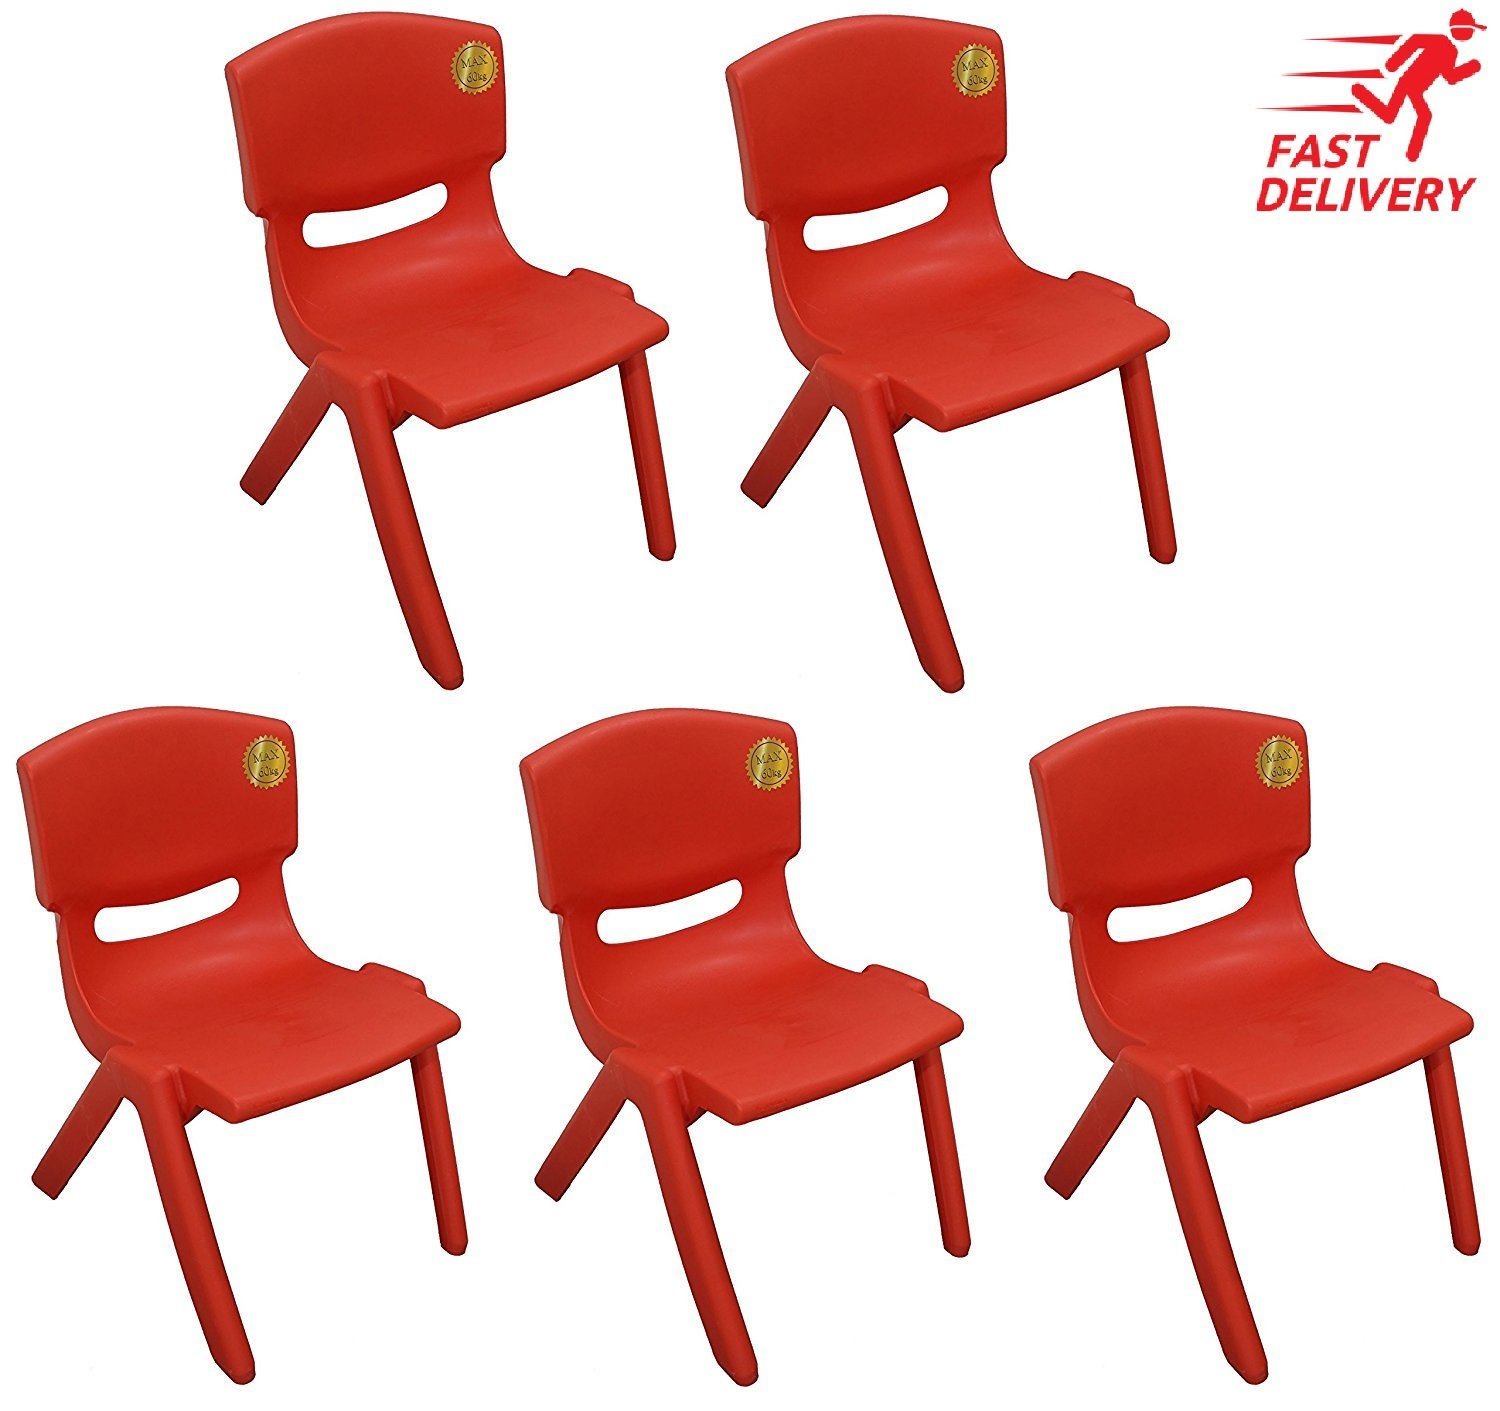 10x Children Strong Stackable Kids Plastic Chairs A406